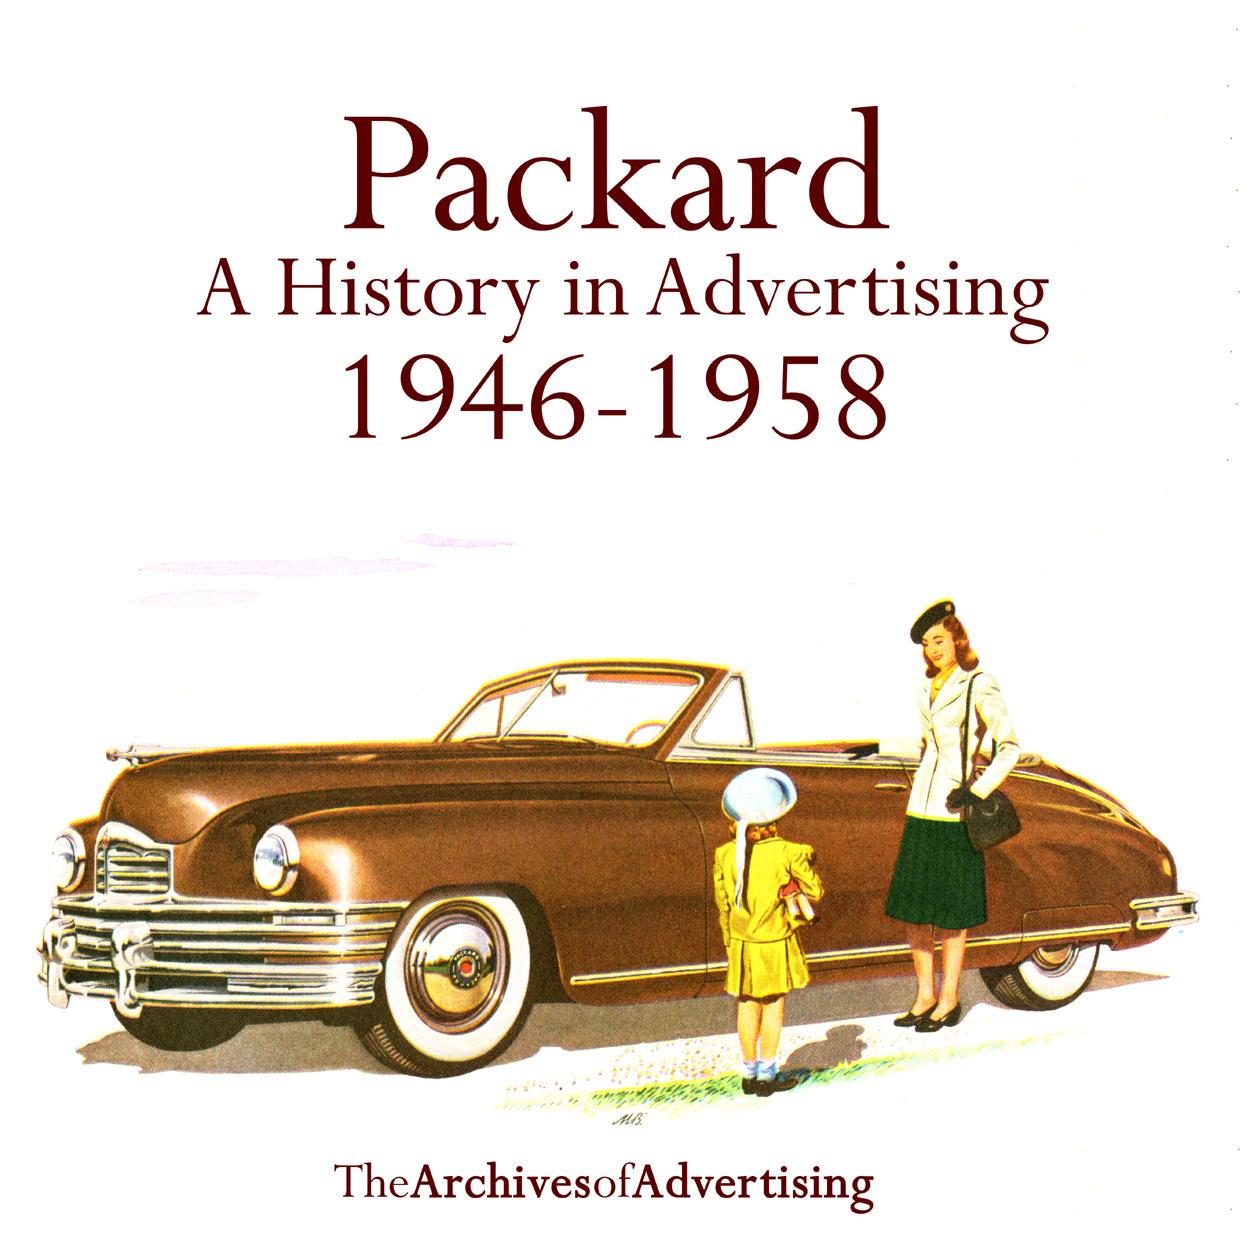 1946 1947 1948 1949 1950 1951 1952 1953 1954 1955-1958 Packard ad CD: 170+ ads!